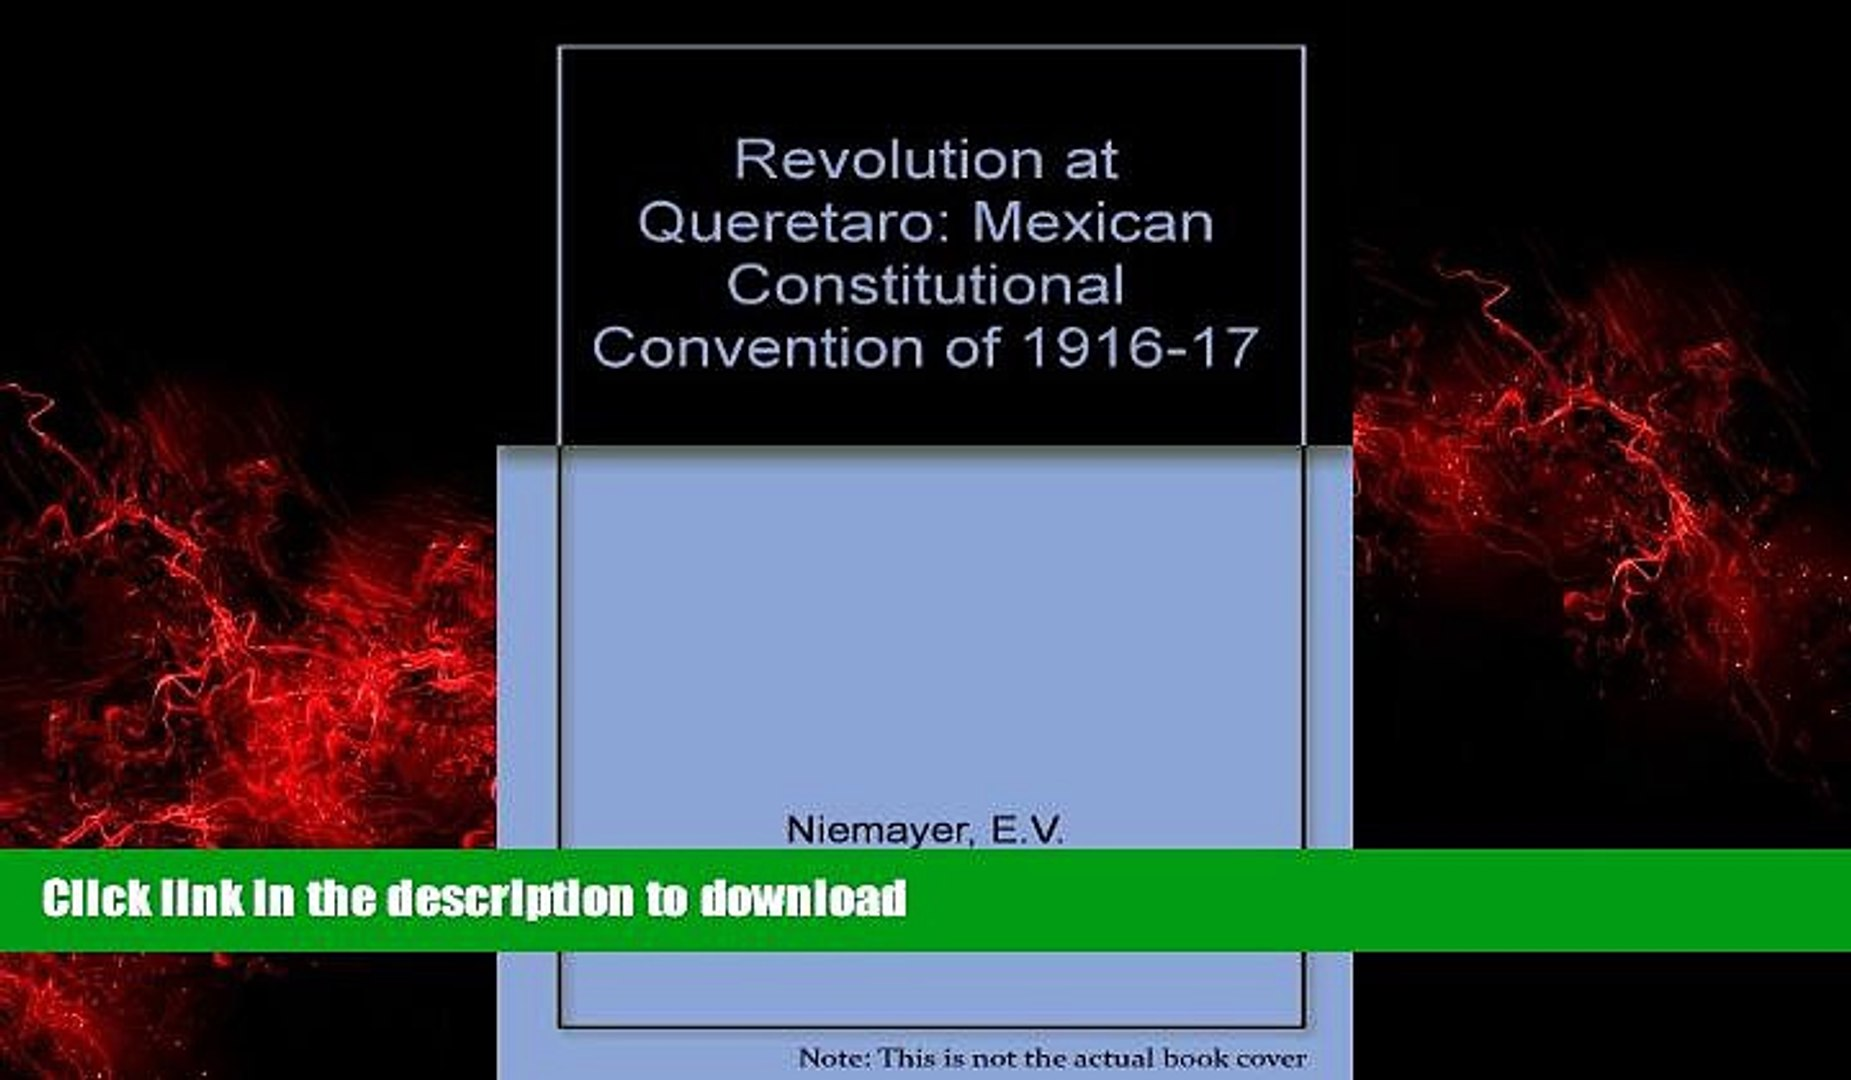 liberty book  Revolution at Queretaro: Mexican Constitutional Convention of 1916-17 (Latin